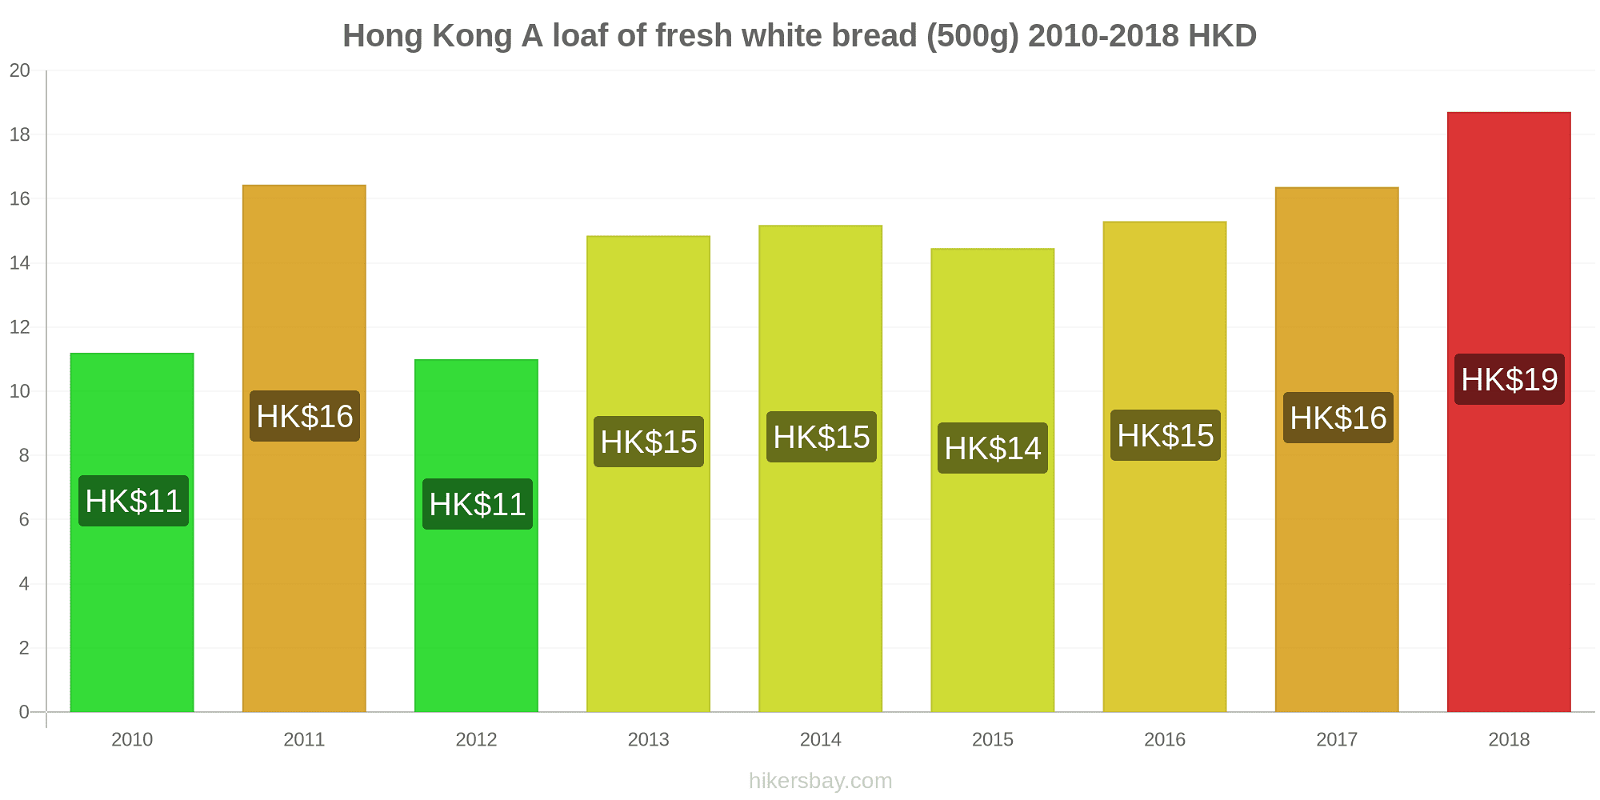 Hong Kong price changes A loaf of fresh white bread (500g) hikersbay.com